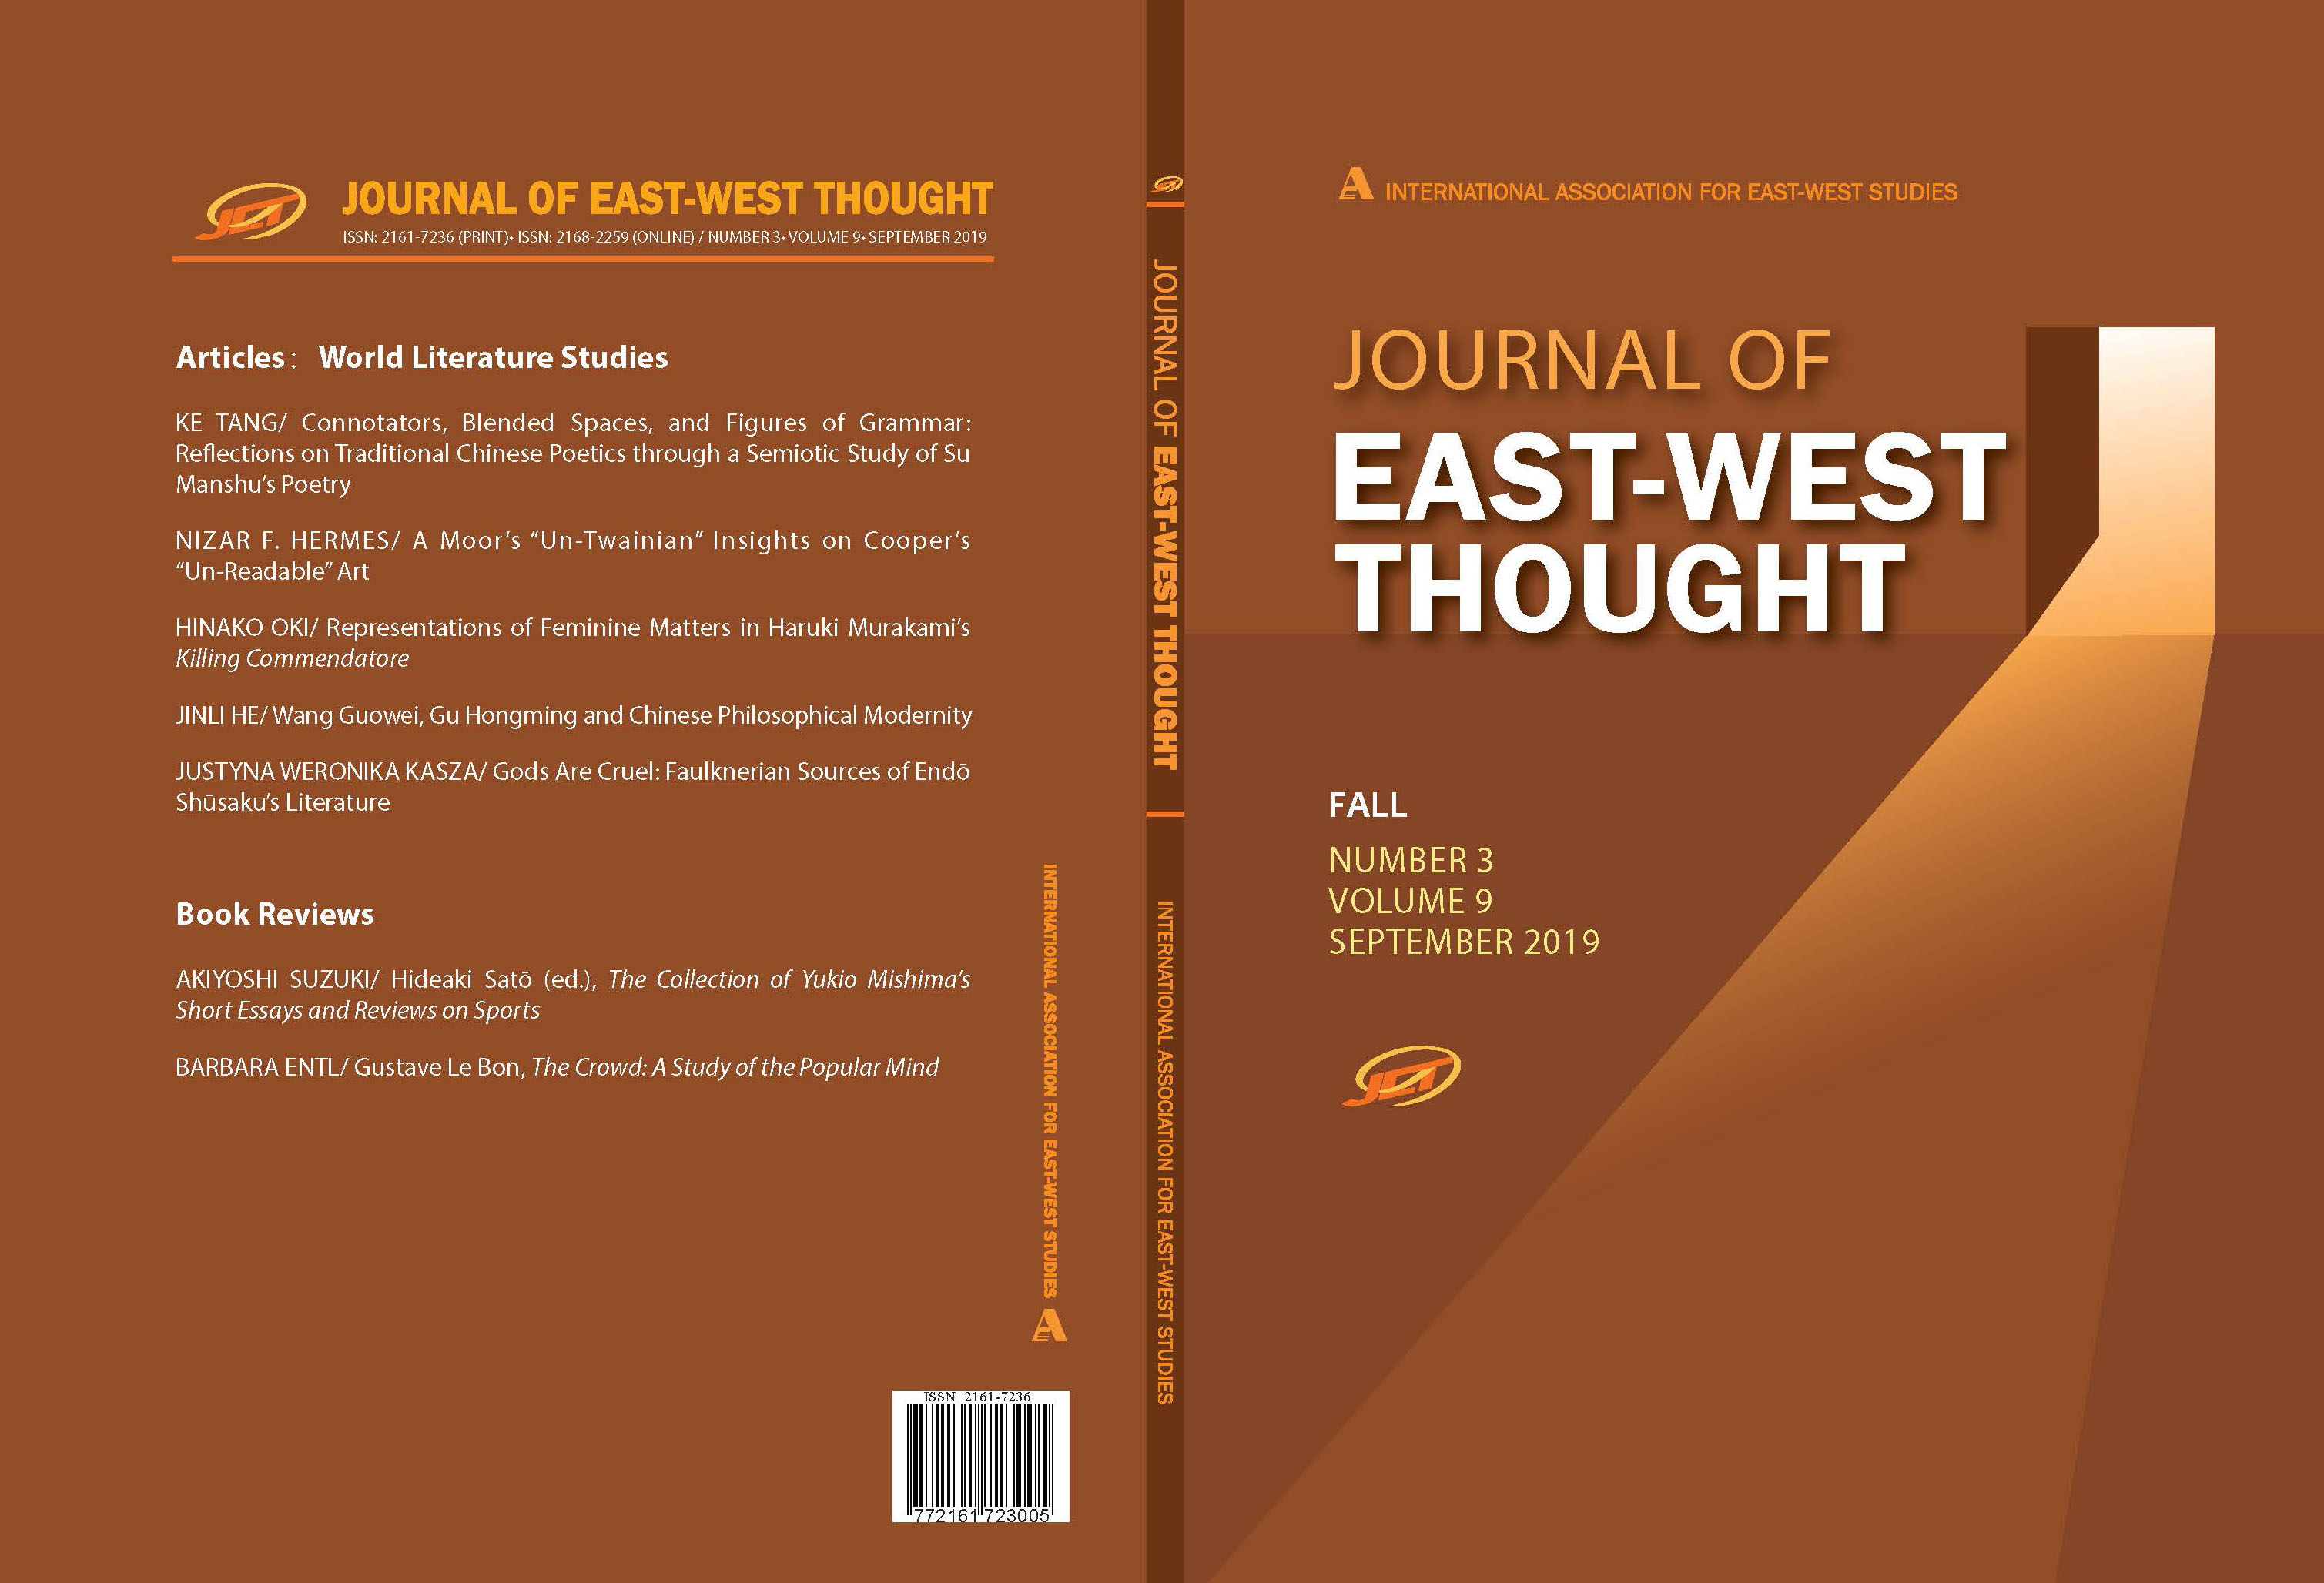 Front and back cover of the Journal of East West Thought Volume 9, Number 3, 2019